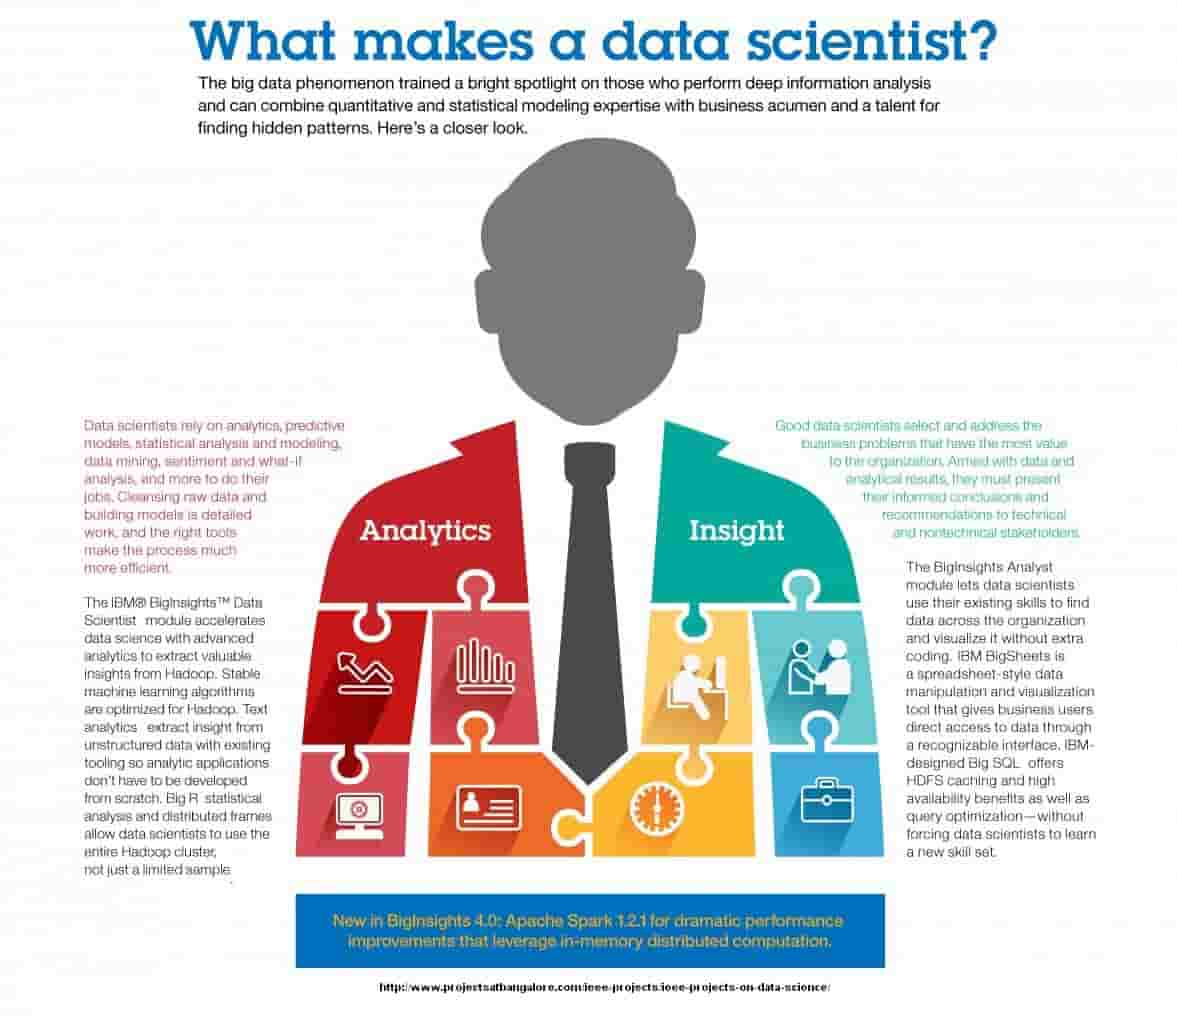 IEEE Projects on Data Science